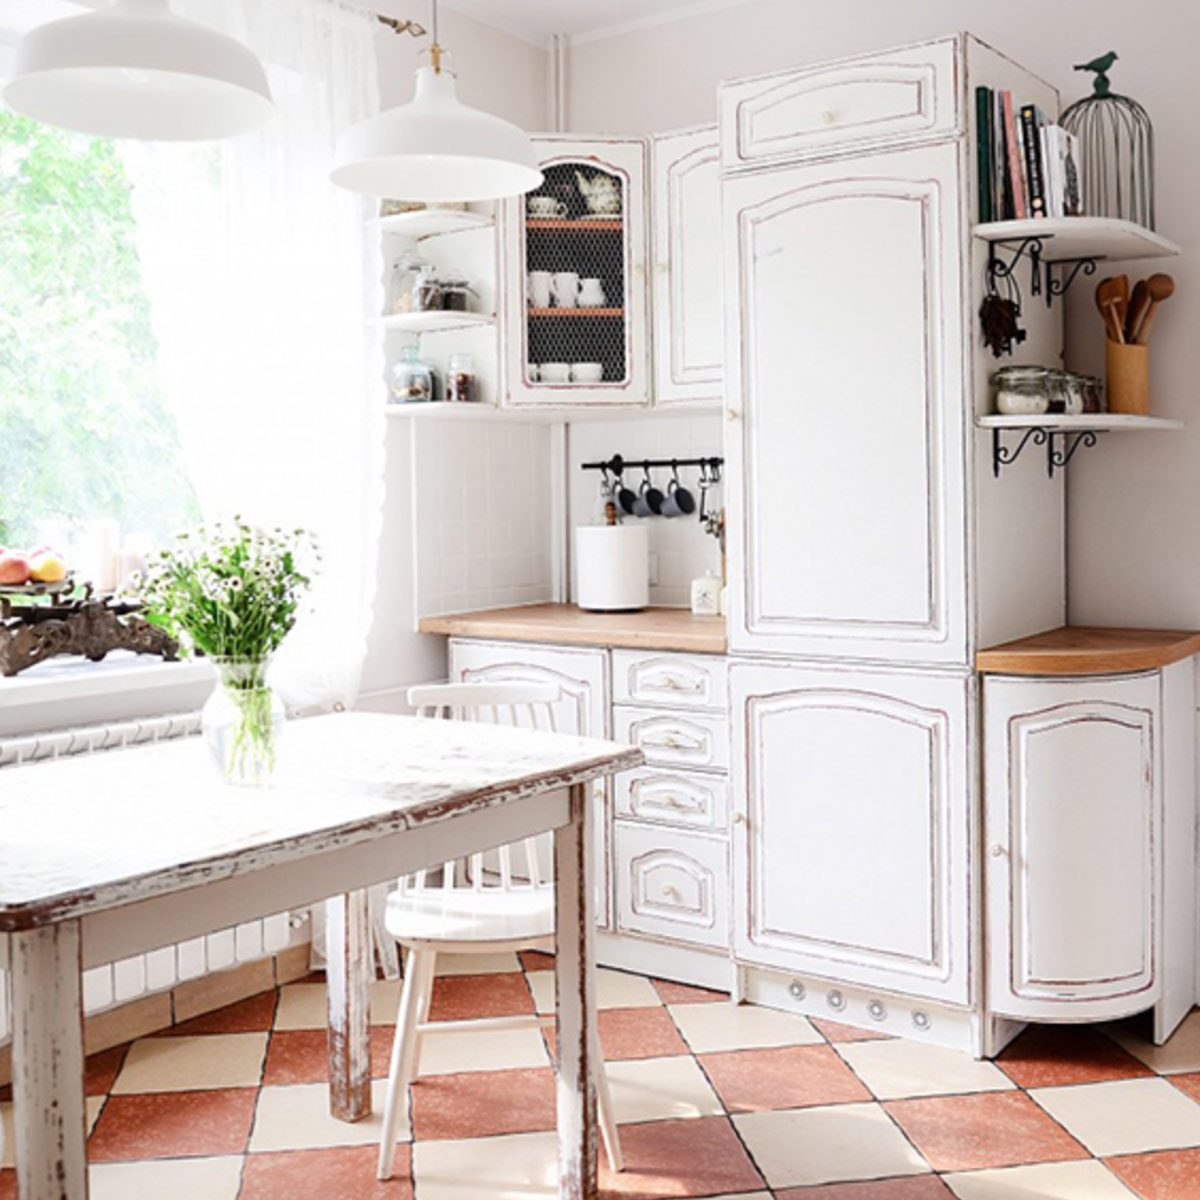 How To Chalk Paint Cabinets Family